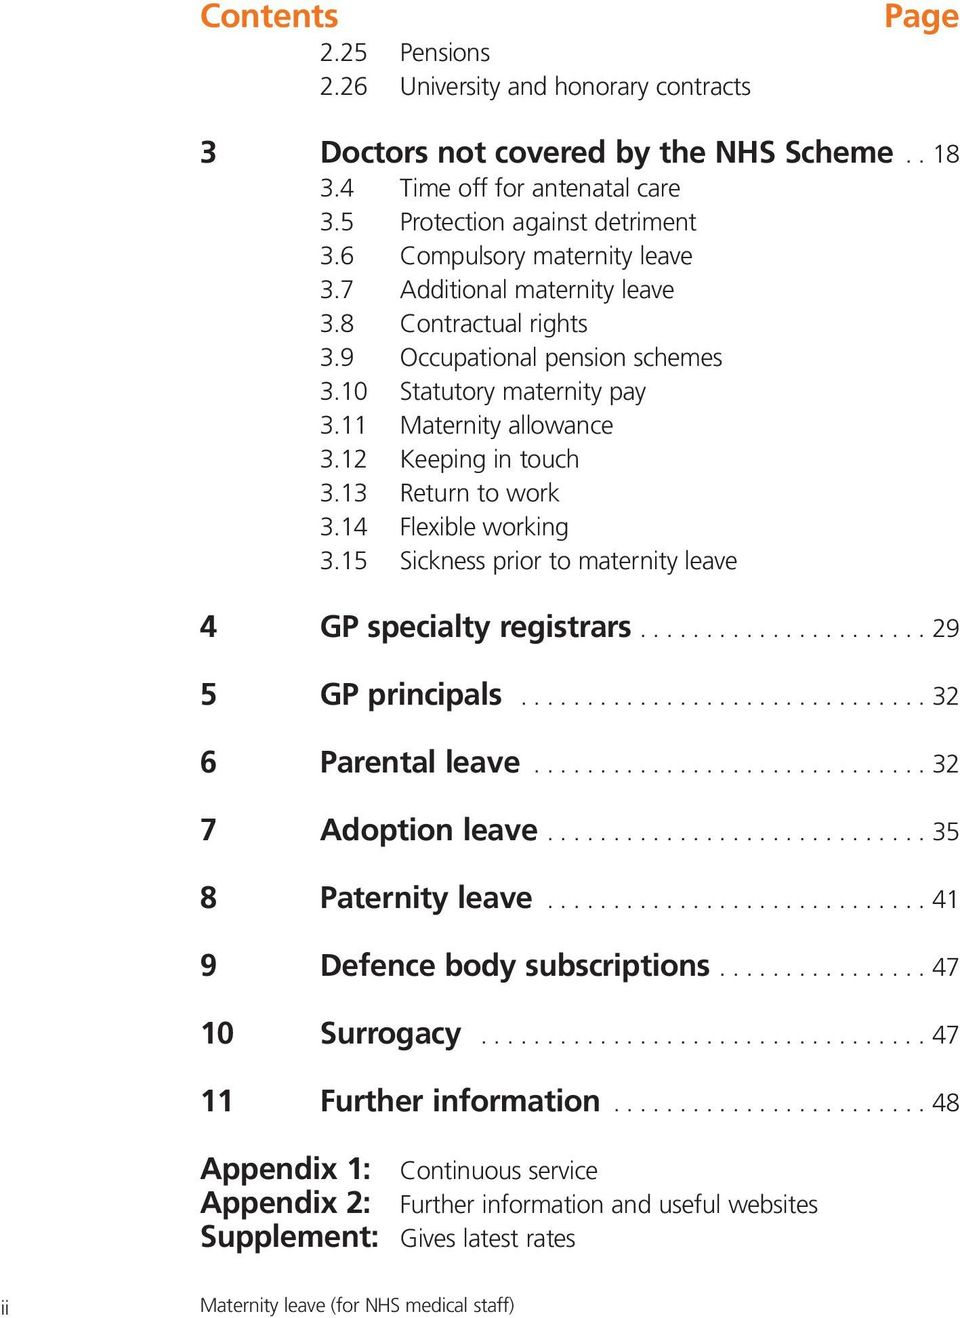 13 Return to work 3.14 Flexible working 3.15 Sickness prior to maternity leave 4 GP specialty registrars...................... 29 5 GP principals............................... 32 6 Parental leave.